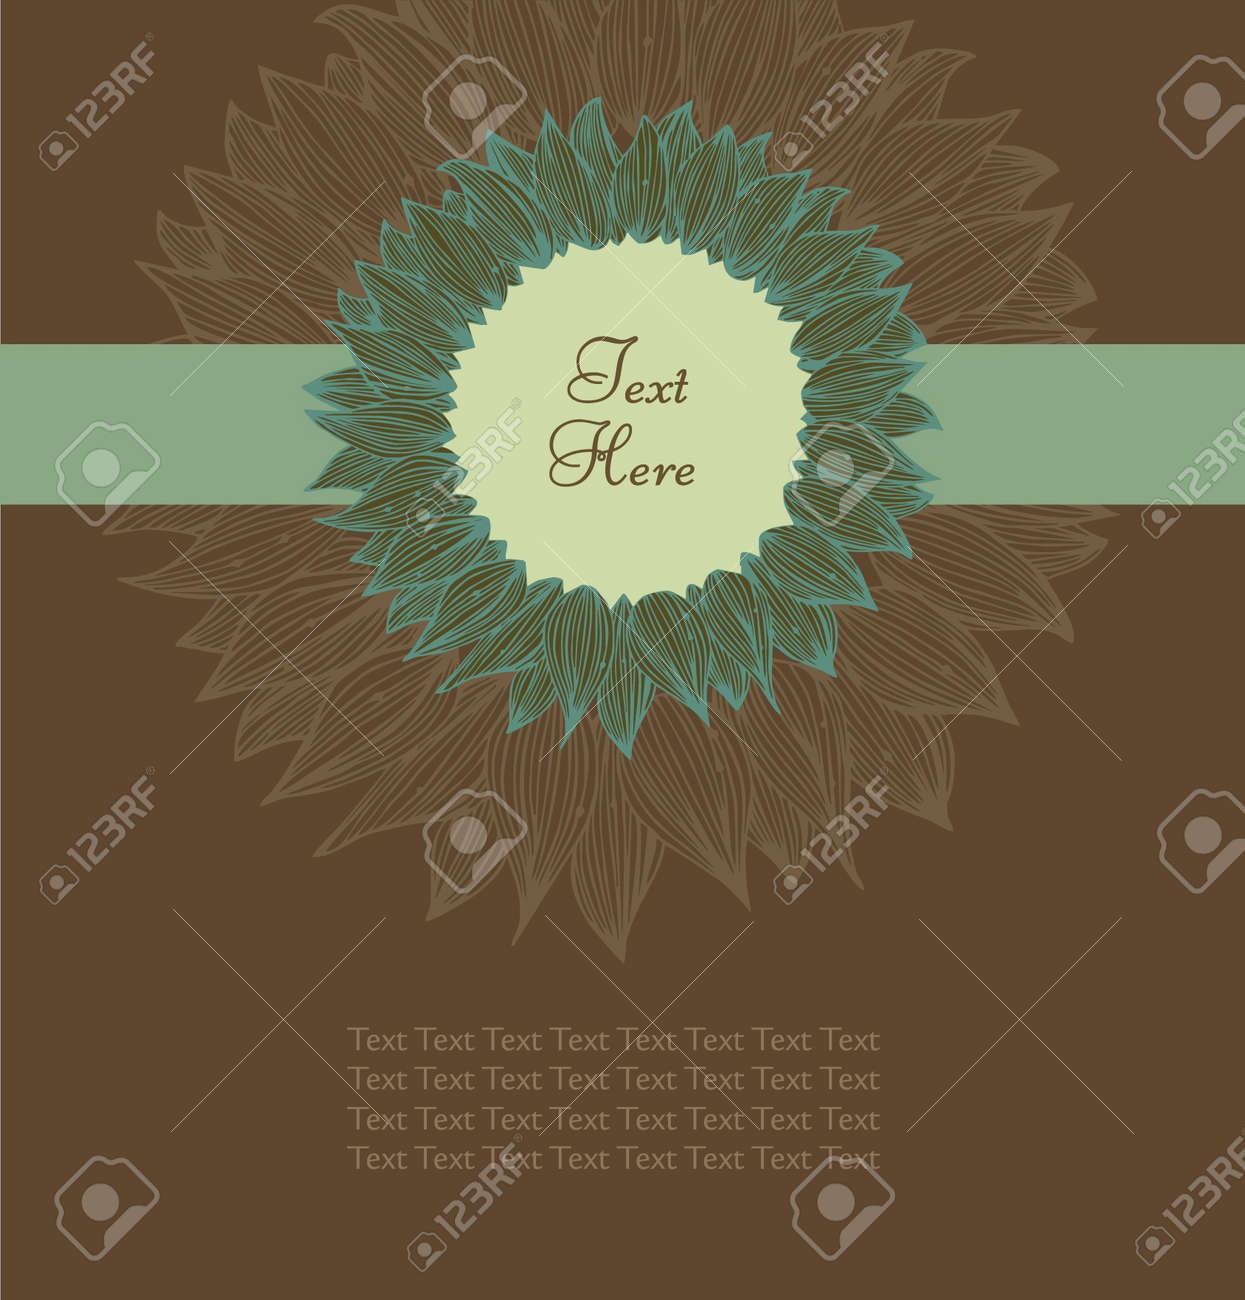 Retro flourish text banner with ribbon. Vintage floral design elements for cards, labels, sewing, arts, cards, scrapbooks, books, covers Stock Vector - 15809258